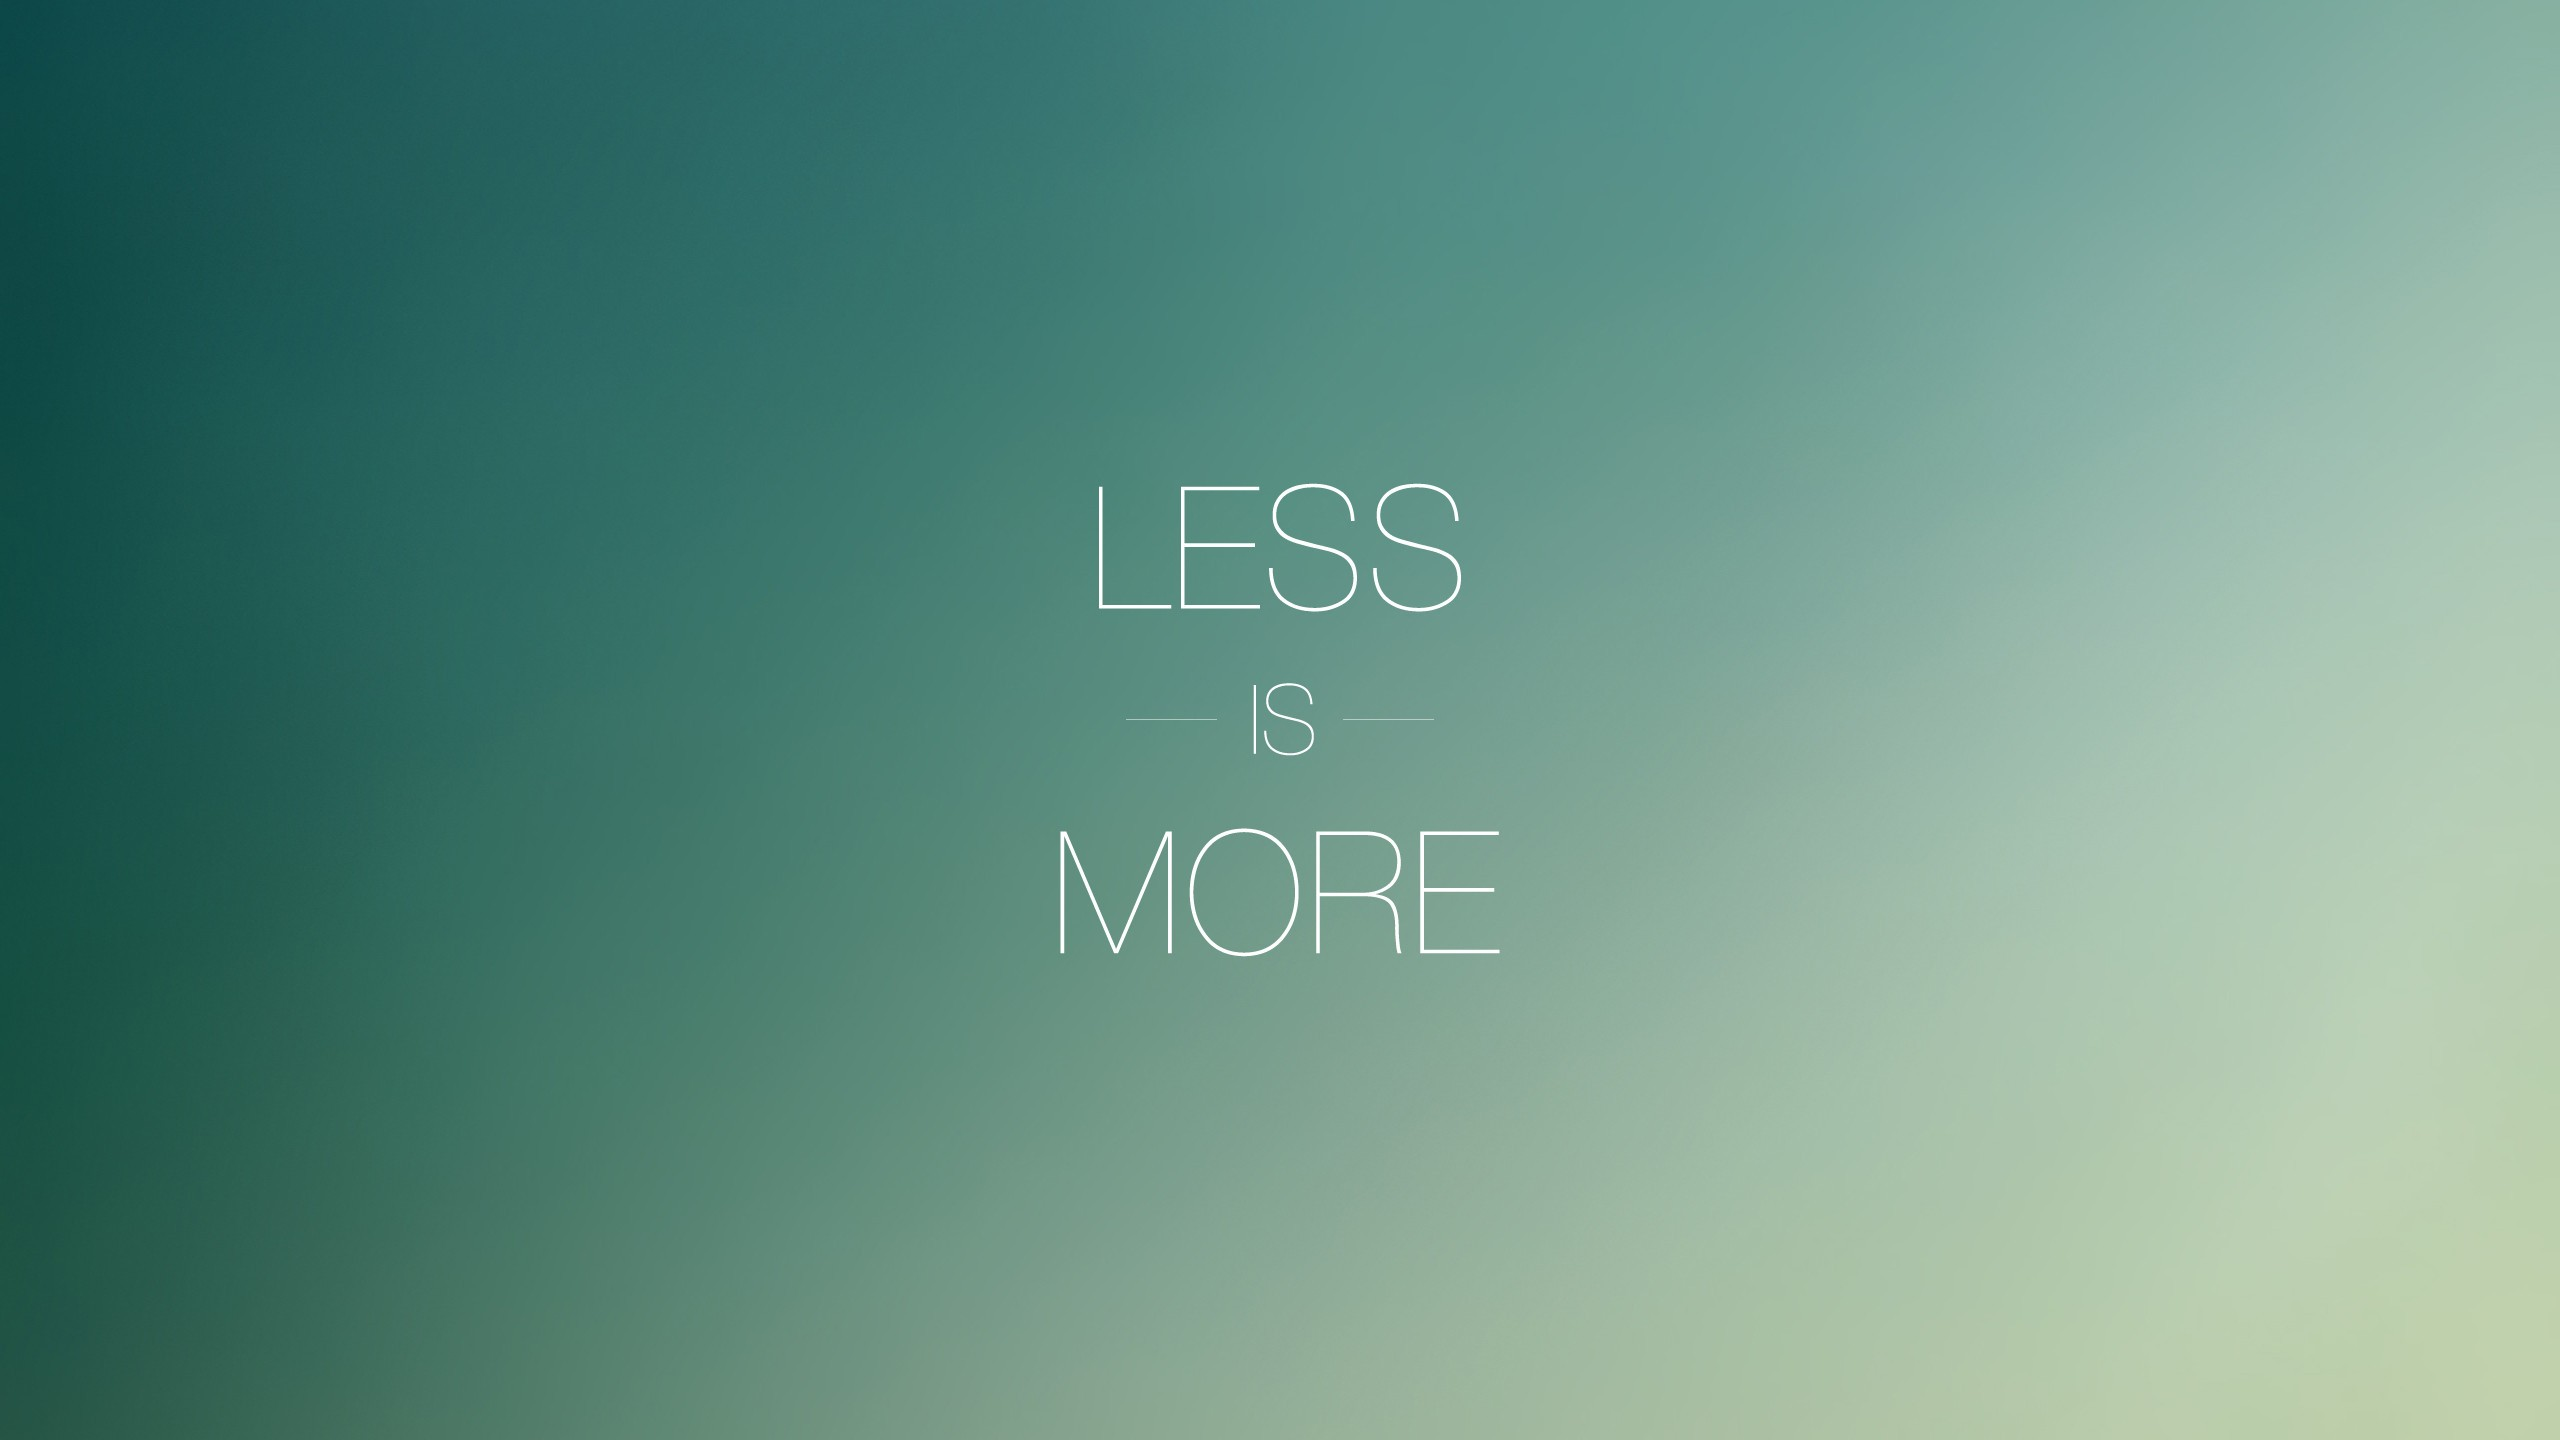 2560x1440 less is more desktop pc and mac wallpaper for More com